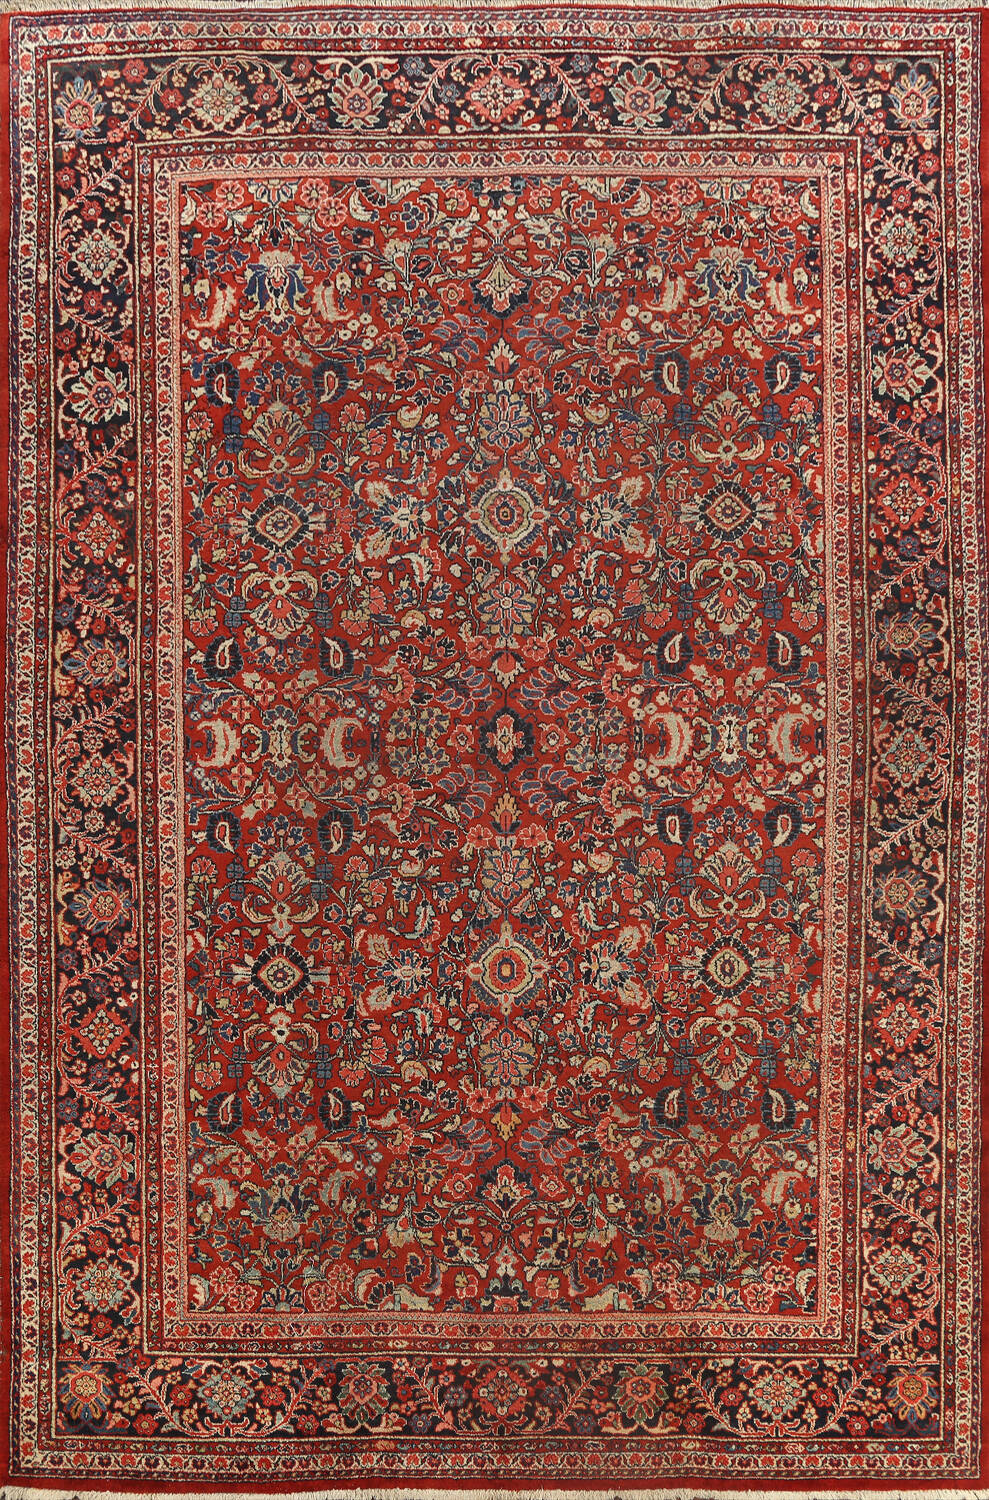 Antique Vegetable Dye Floral Mahal Persian Area Rug 10x14 image 1